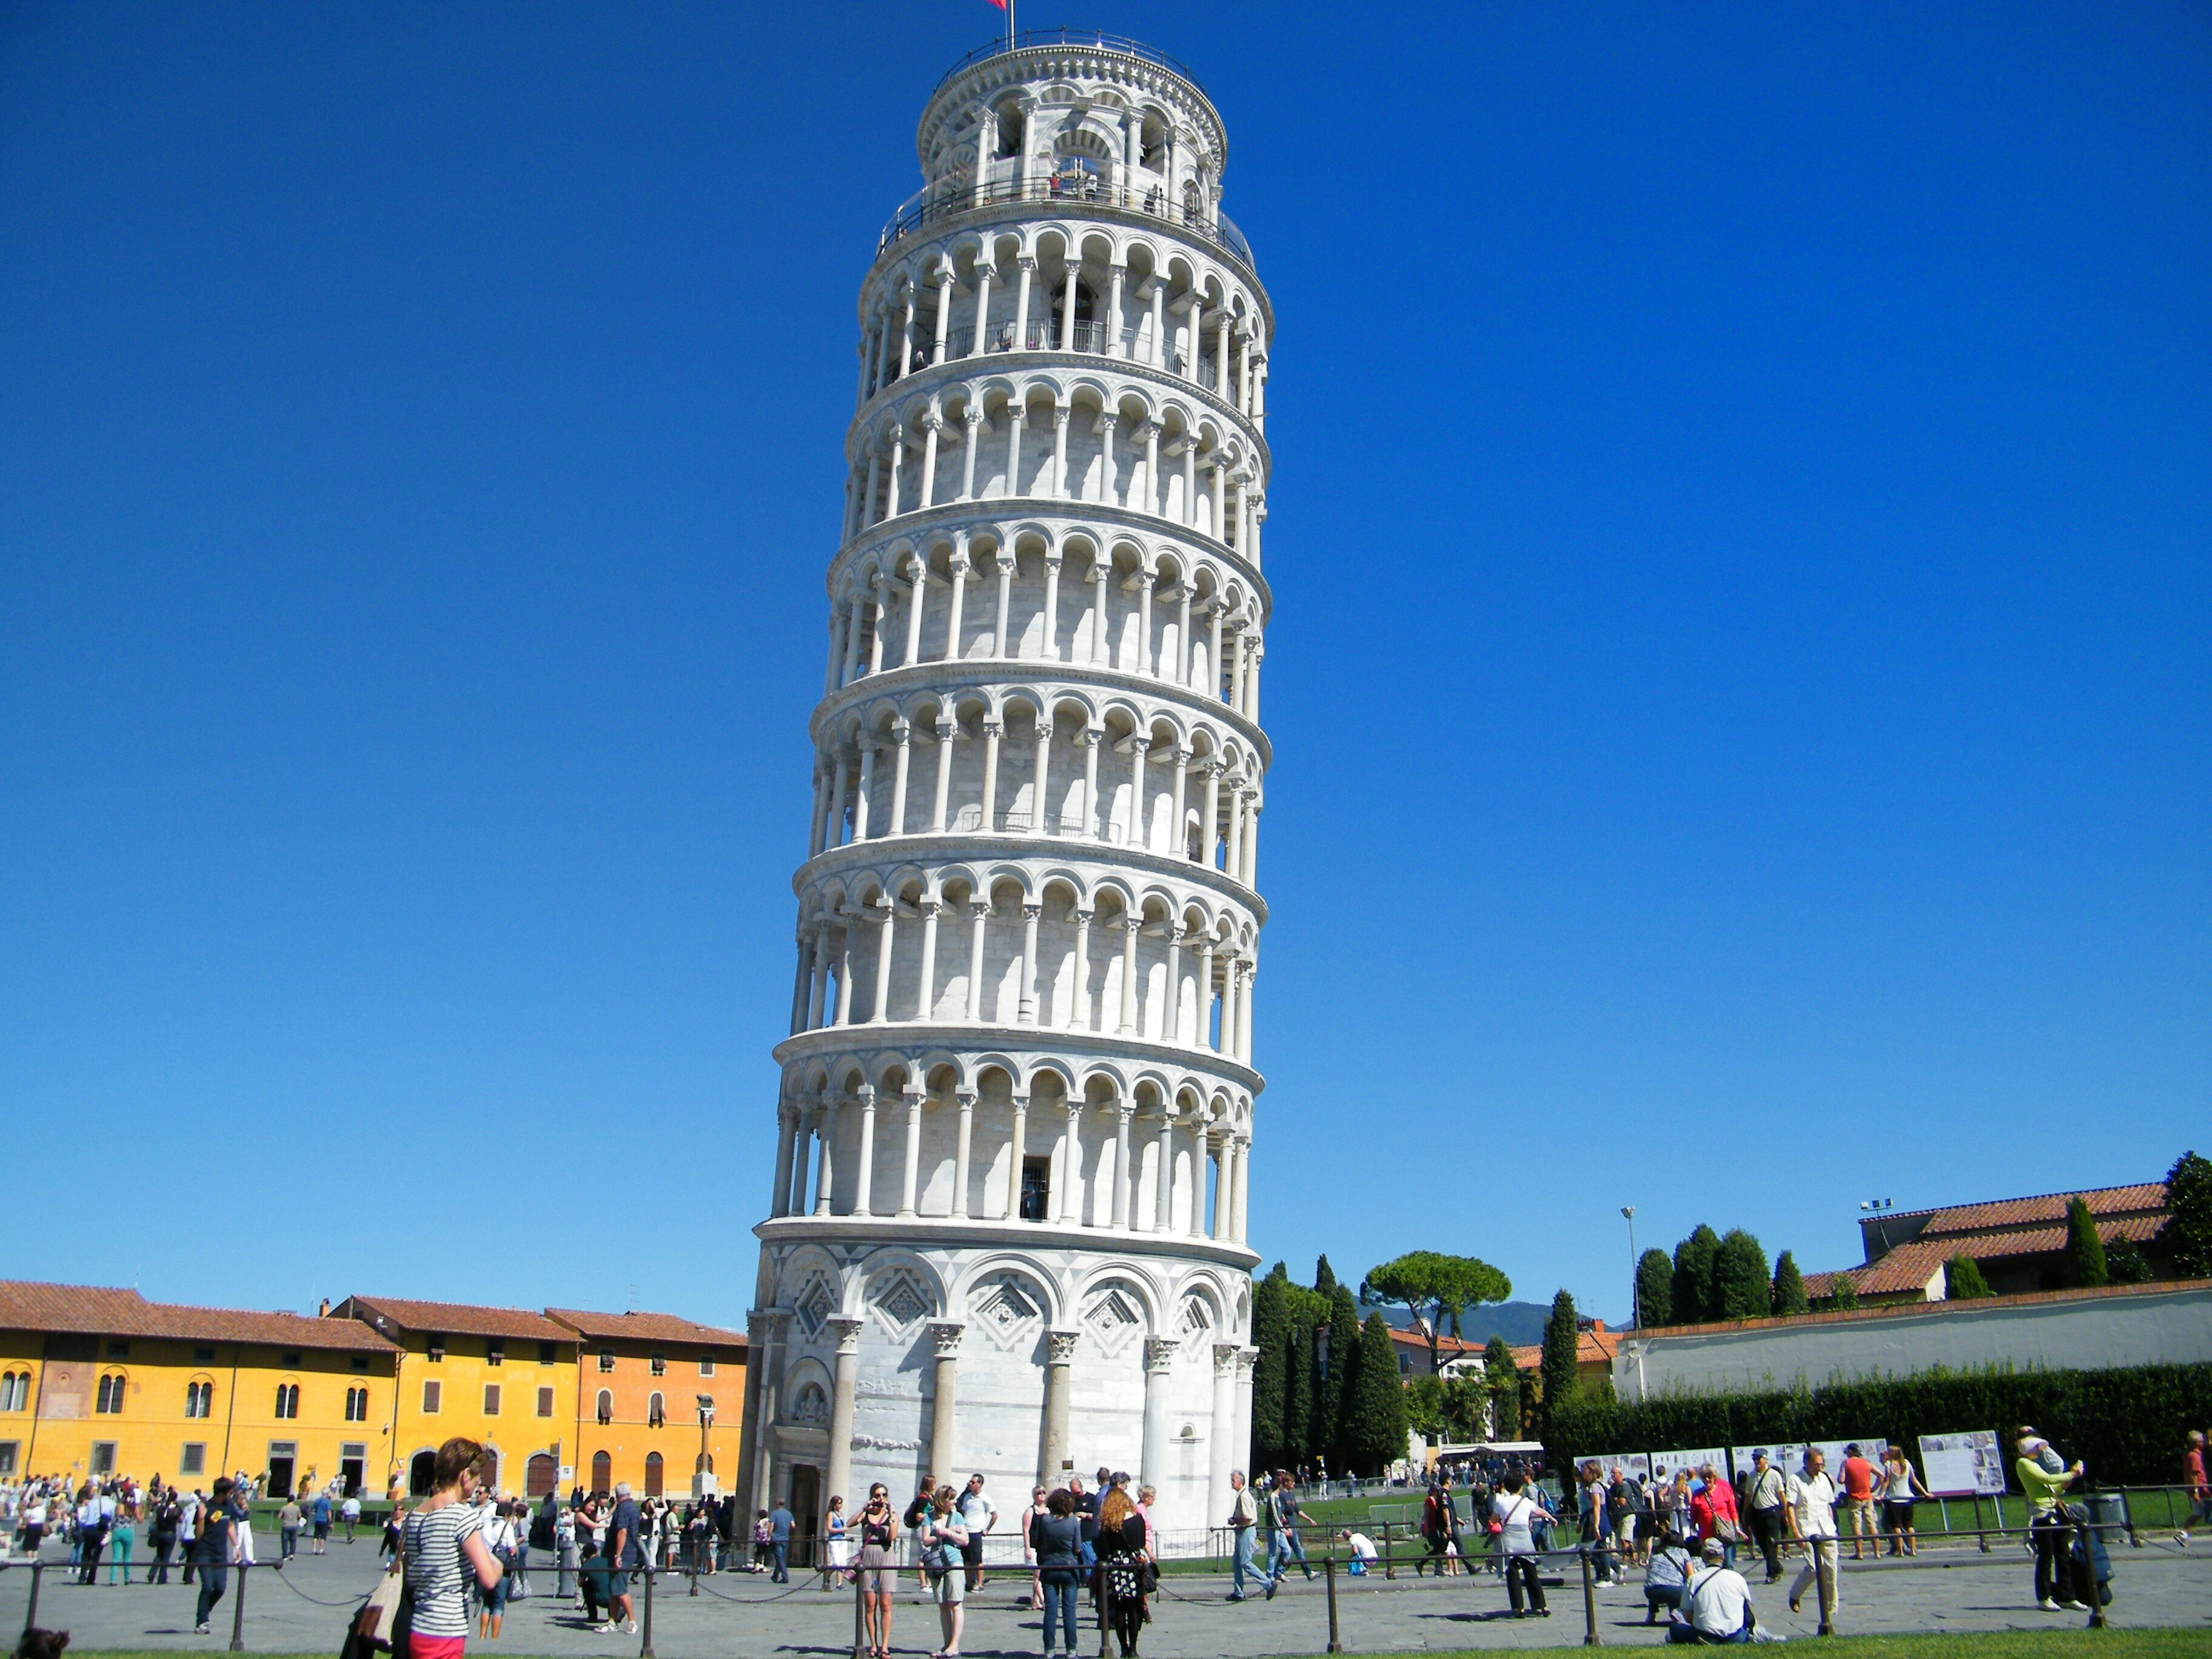 Free stock photo of the leaning tower of pisa from the plaza public domain - Lego architecture tour de pise ...